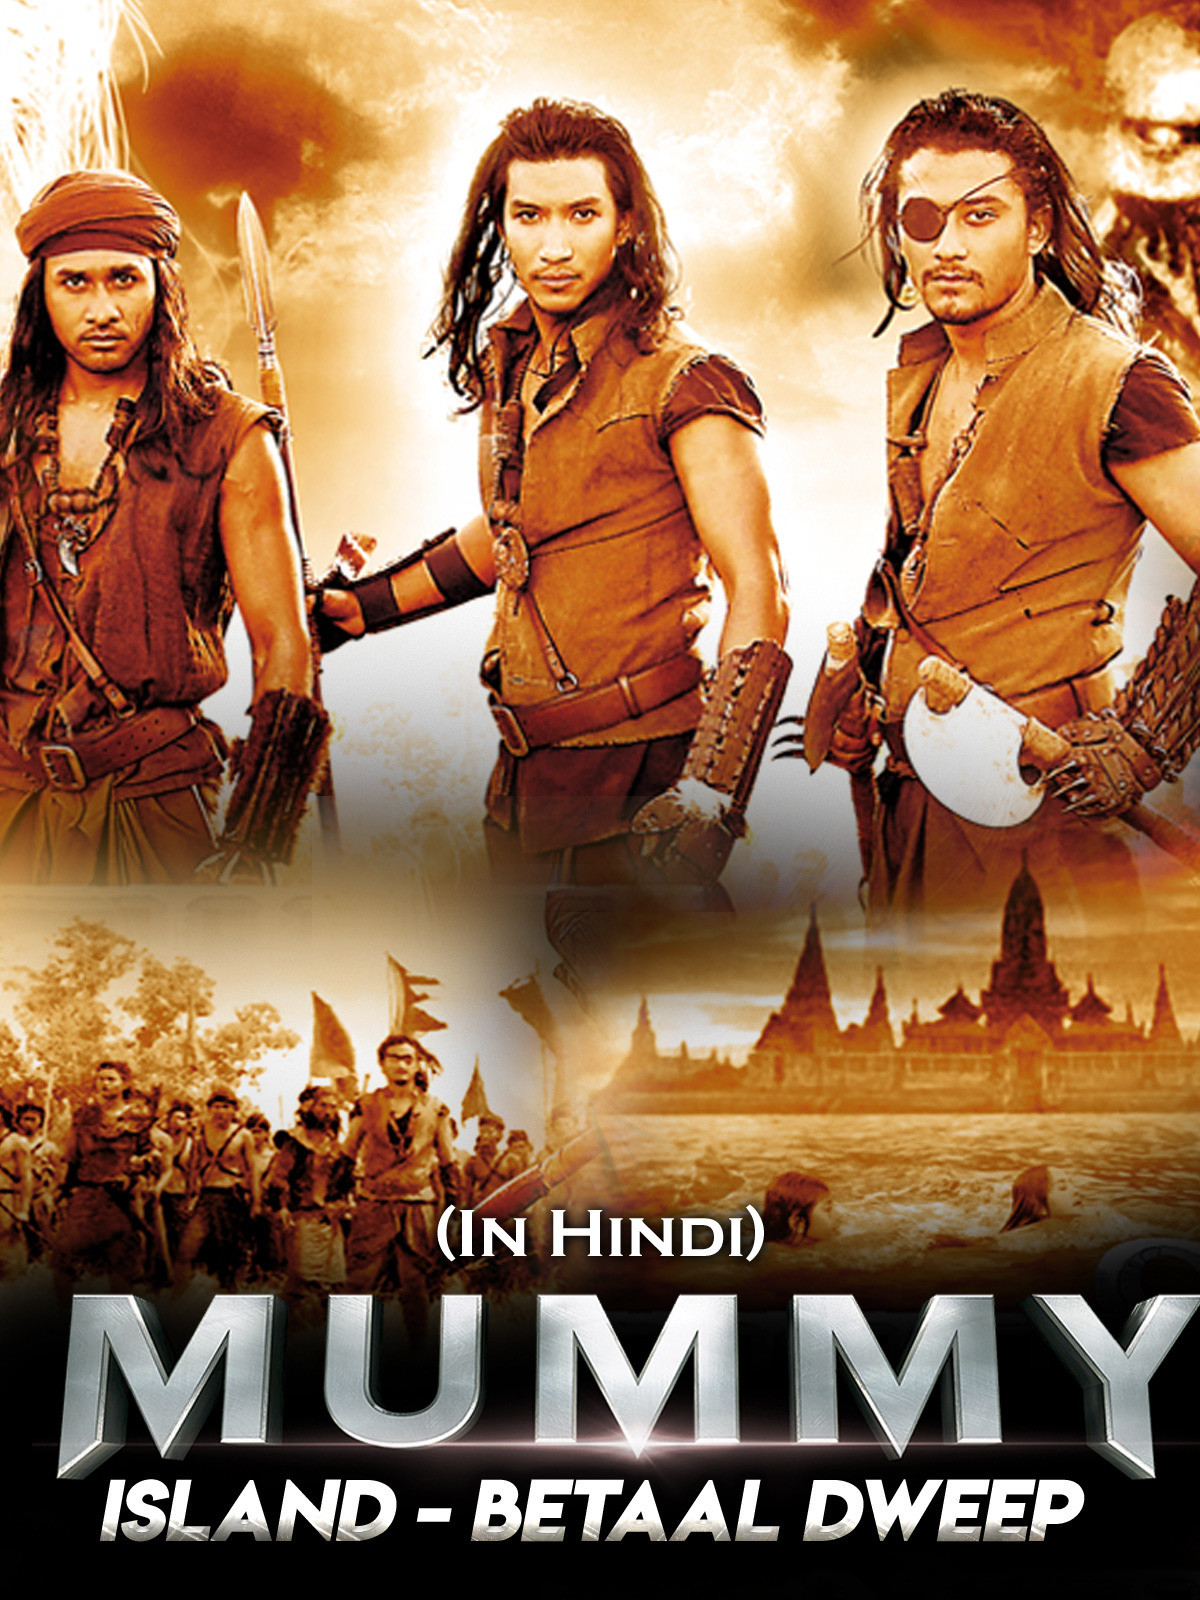 Mummy Island Bethal Dweep 2019 Hindi Dubbed 250MB WEB-DL